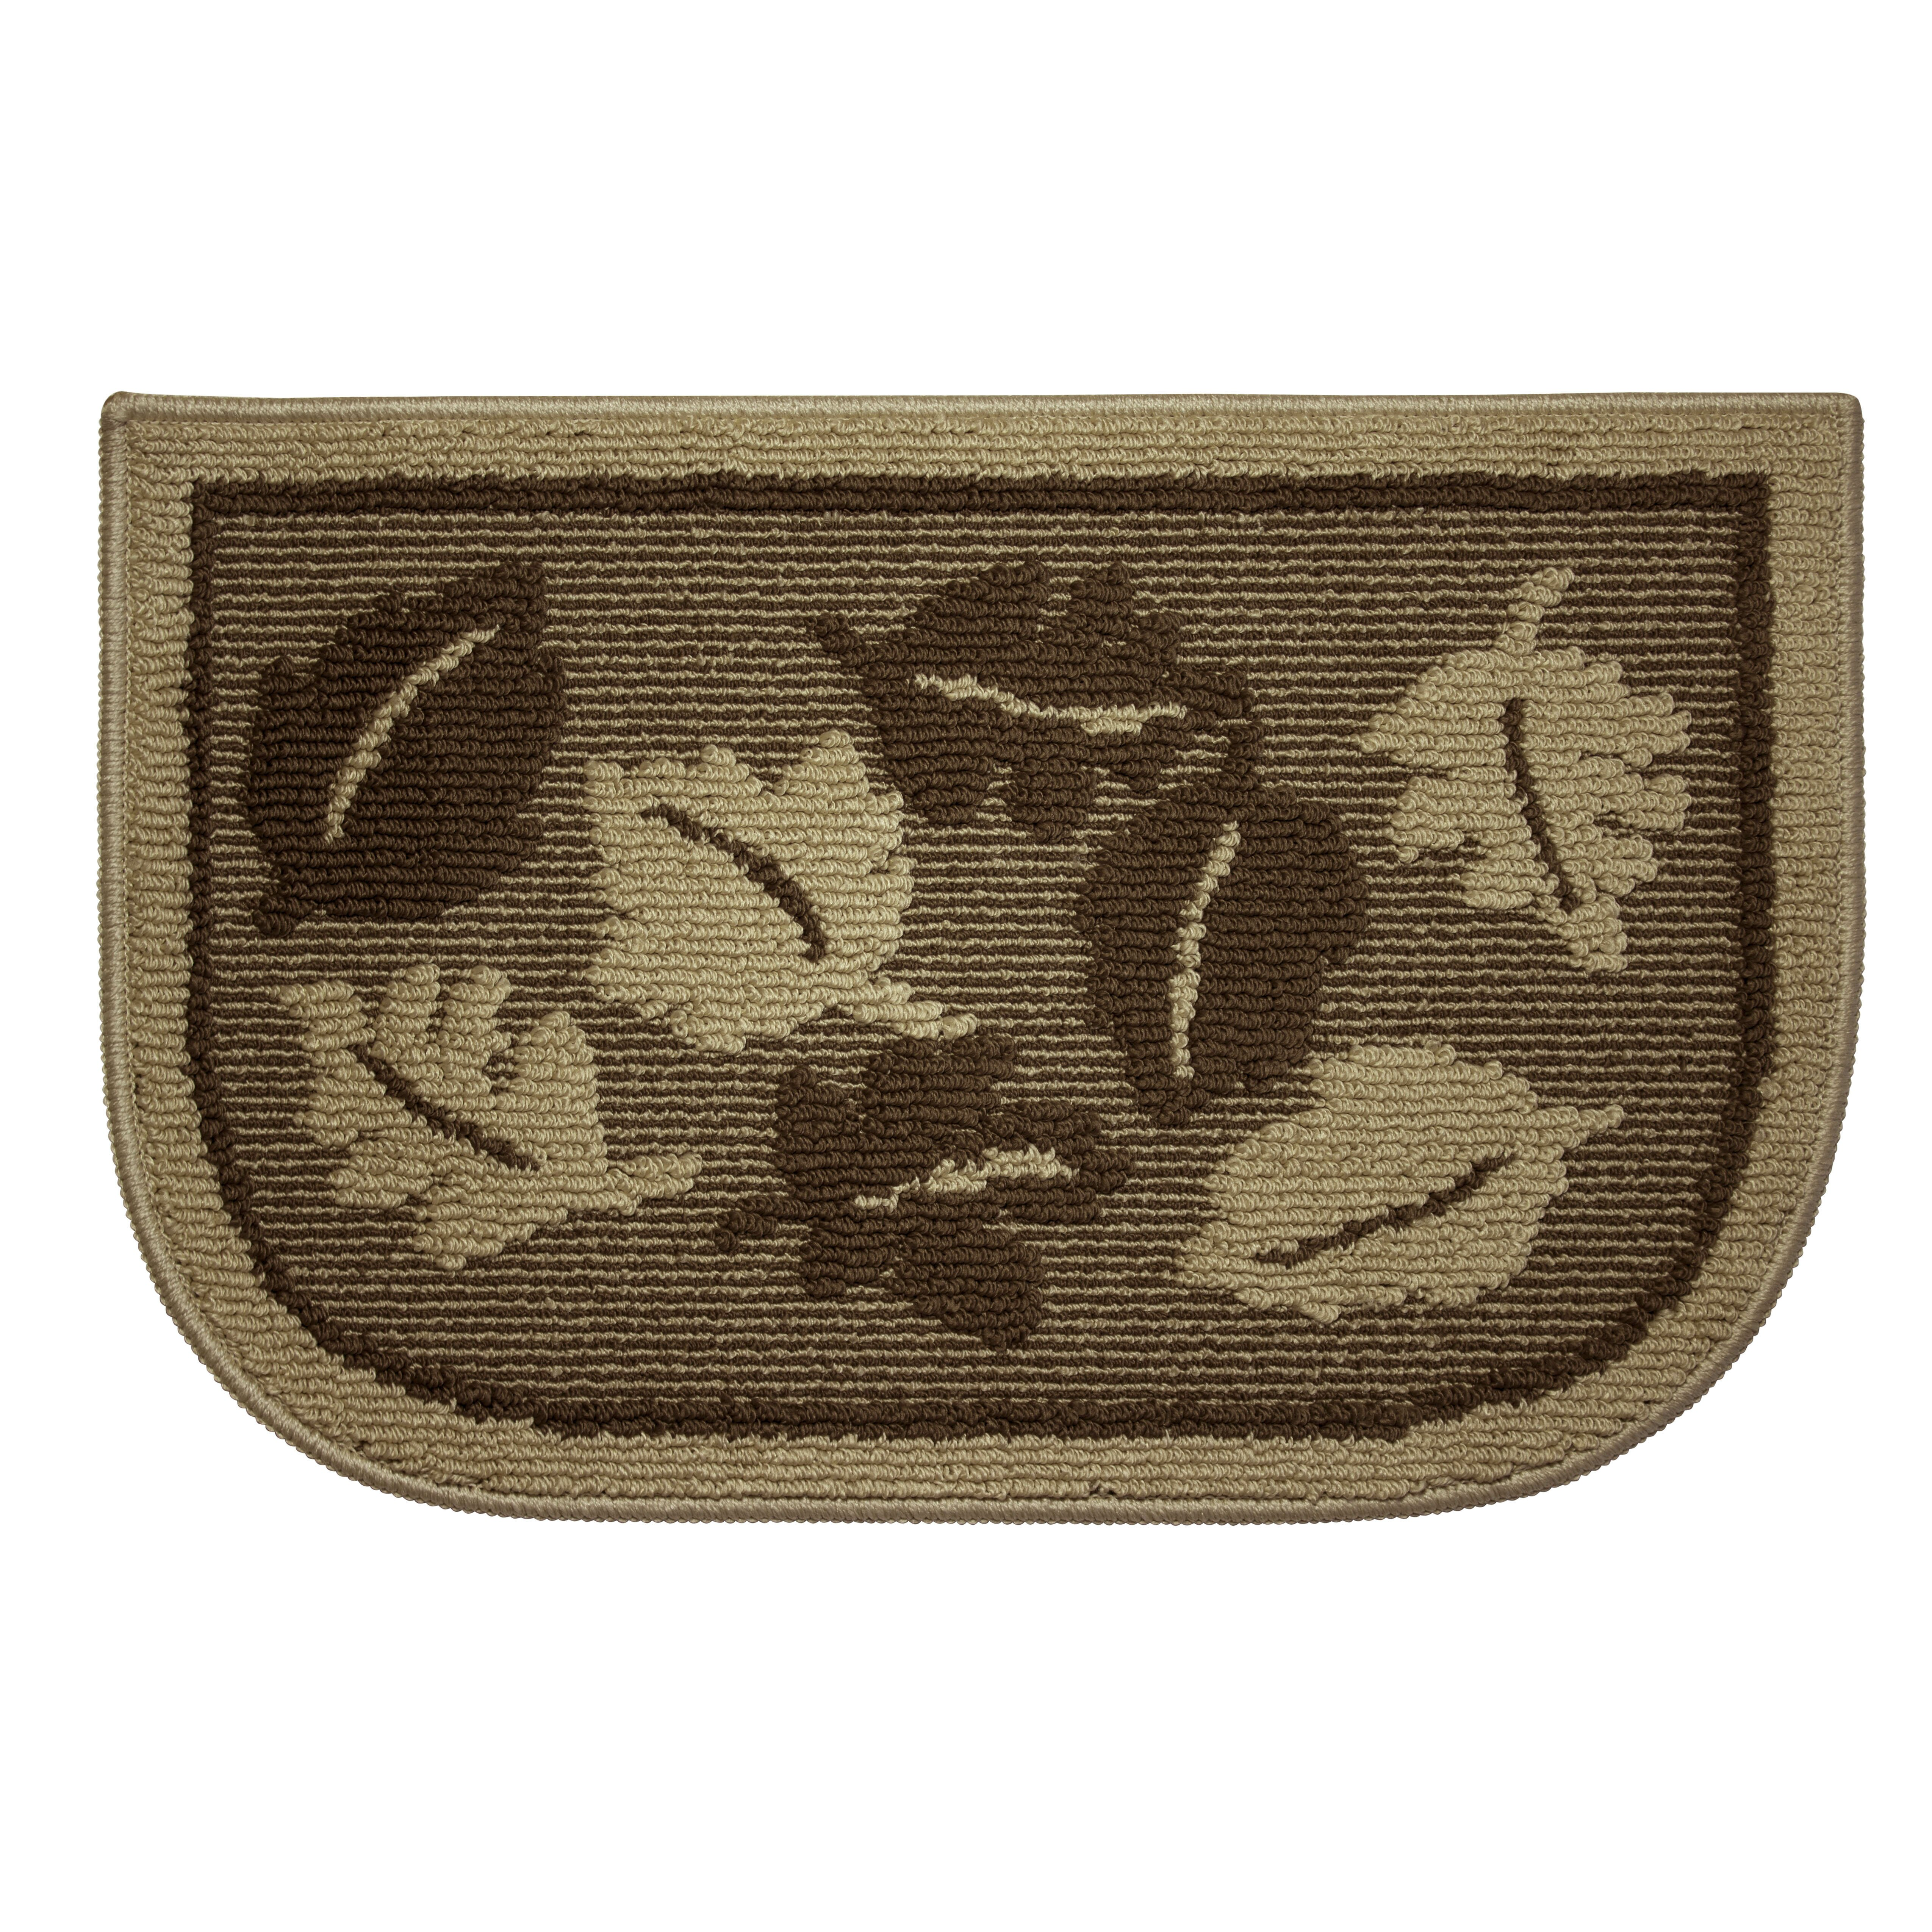 Structures Textured Loop Livingston Leaves Wedge Slice Kitchen Area Rug